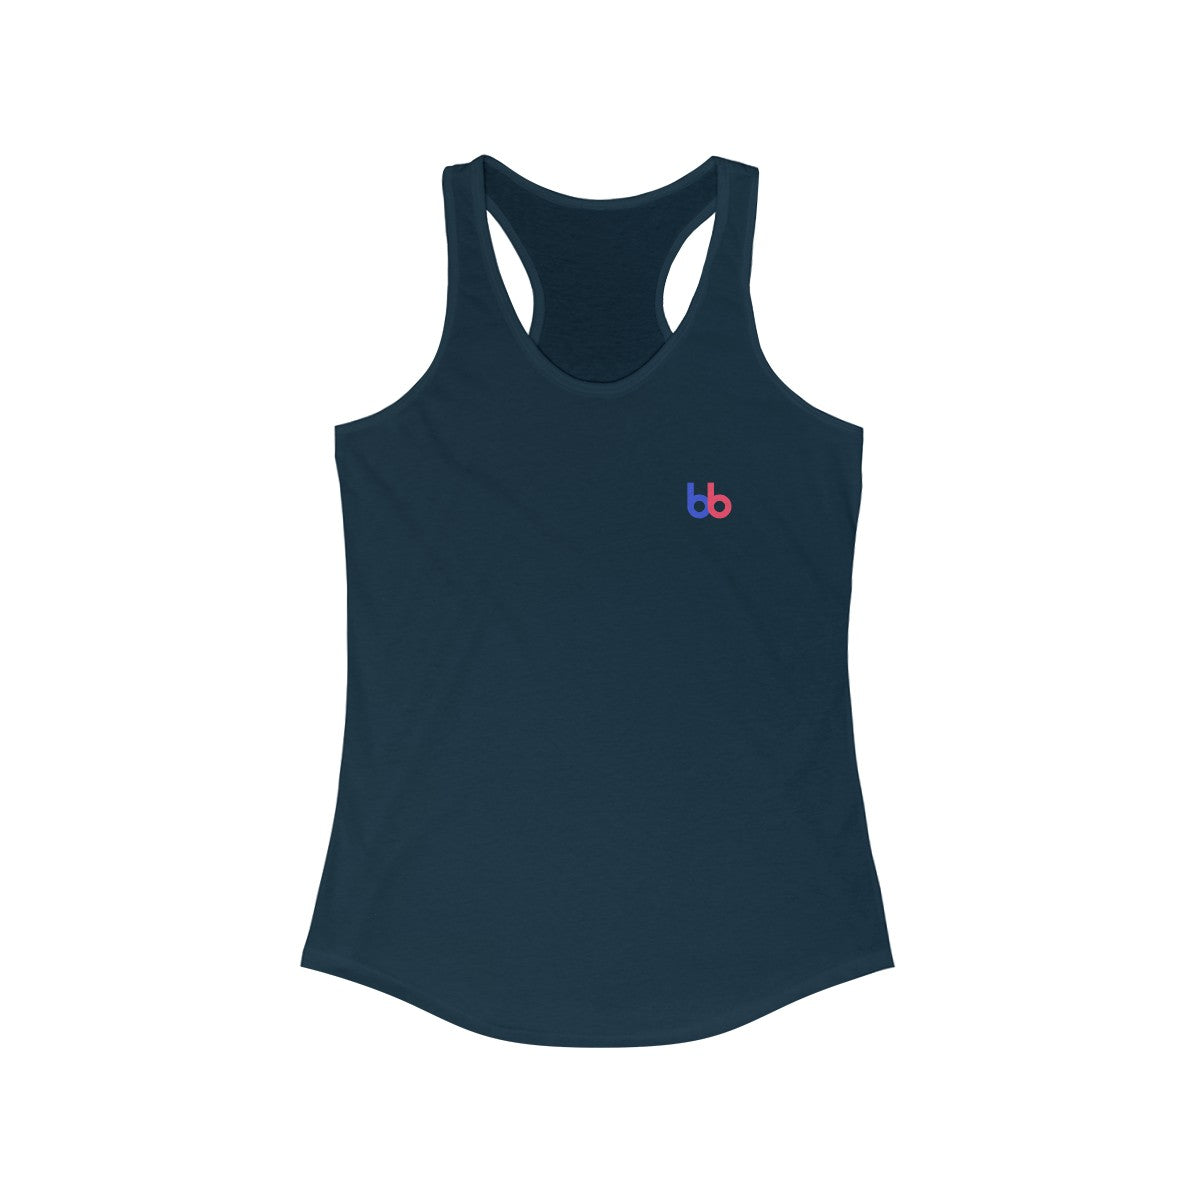 Be Everything Women's Racerback Tank